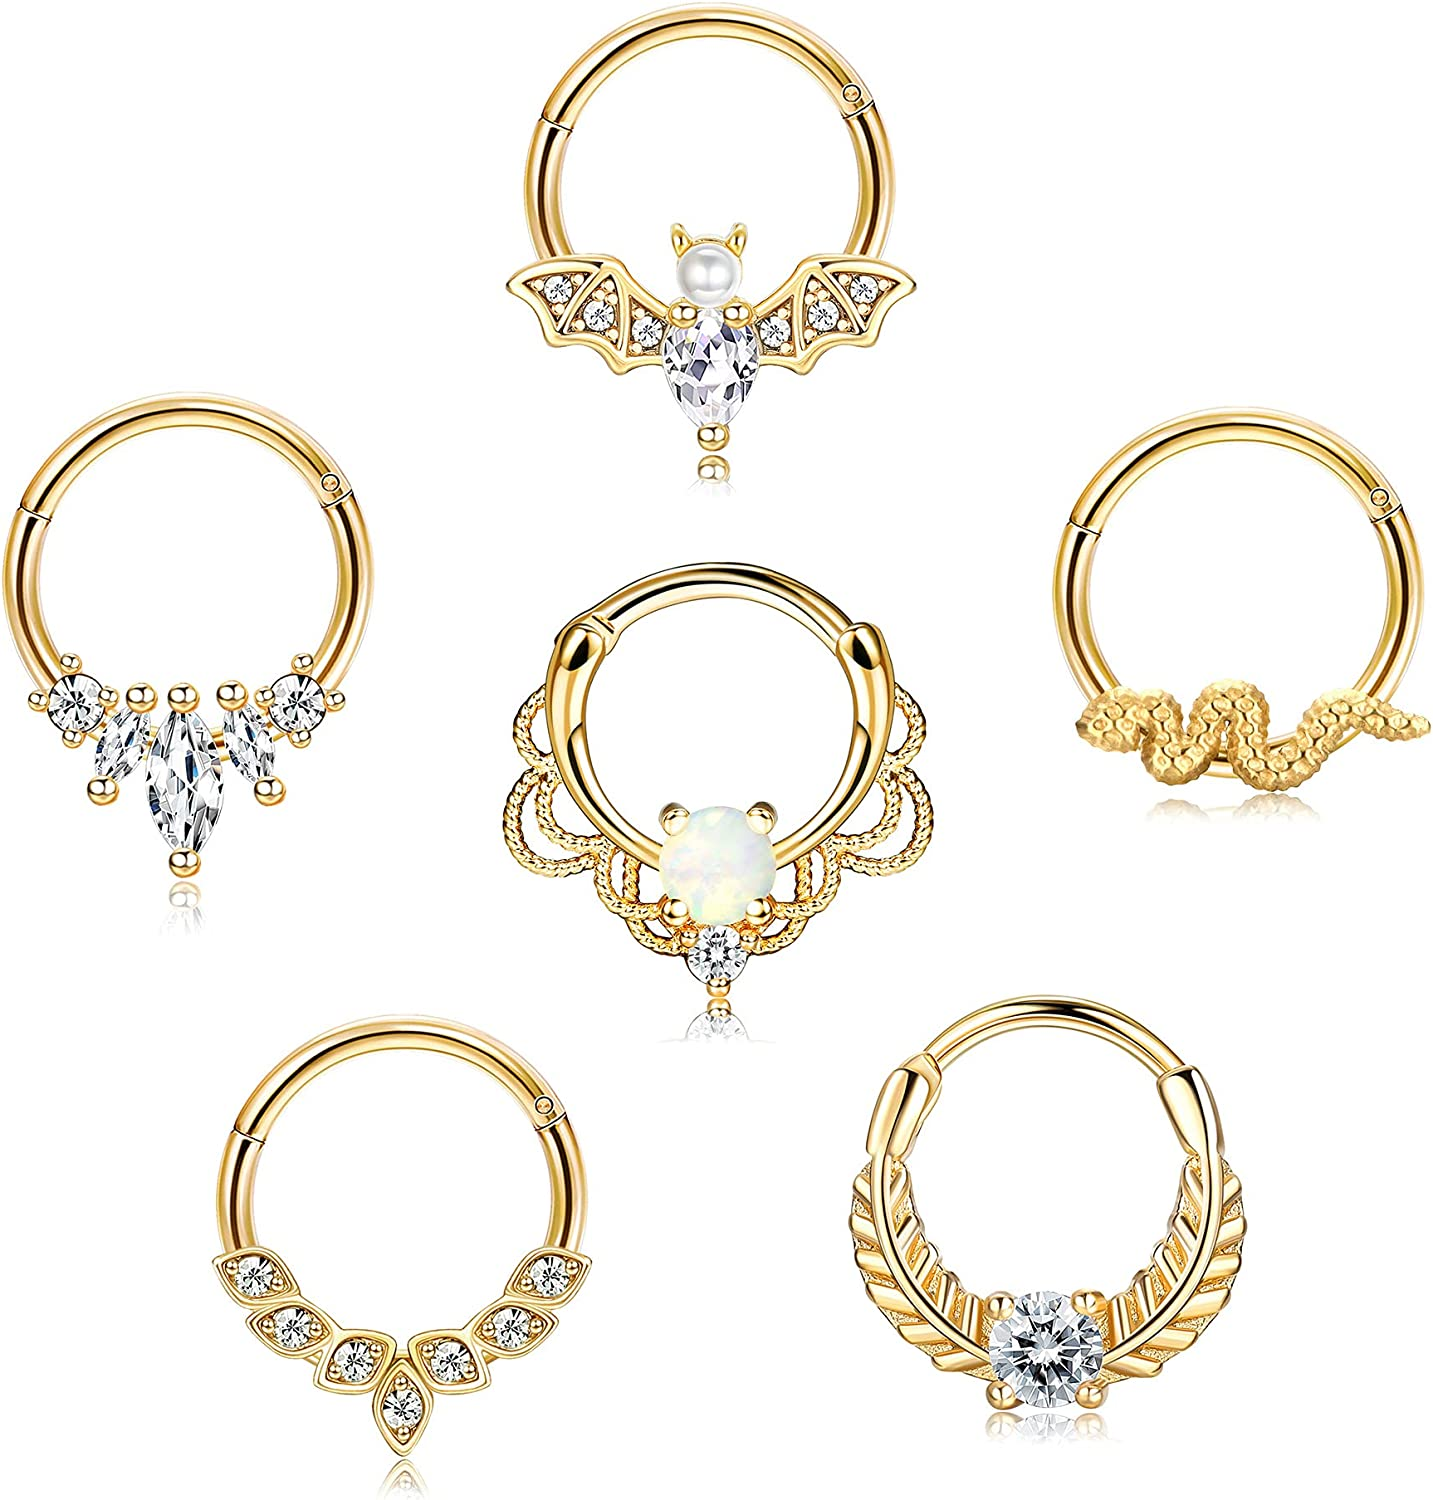 JOERICA 6Pcs 16G Septum Rings Stainless Steel CZ Opal Daith Helix Tragus Piercing Jewelry Cartilage Earrings Hoop Nose Ring Bat Hinged Clicker Septum Jewelry 8MM 10MM